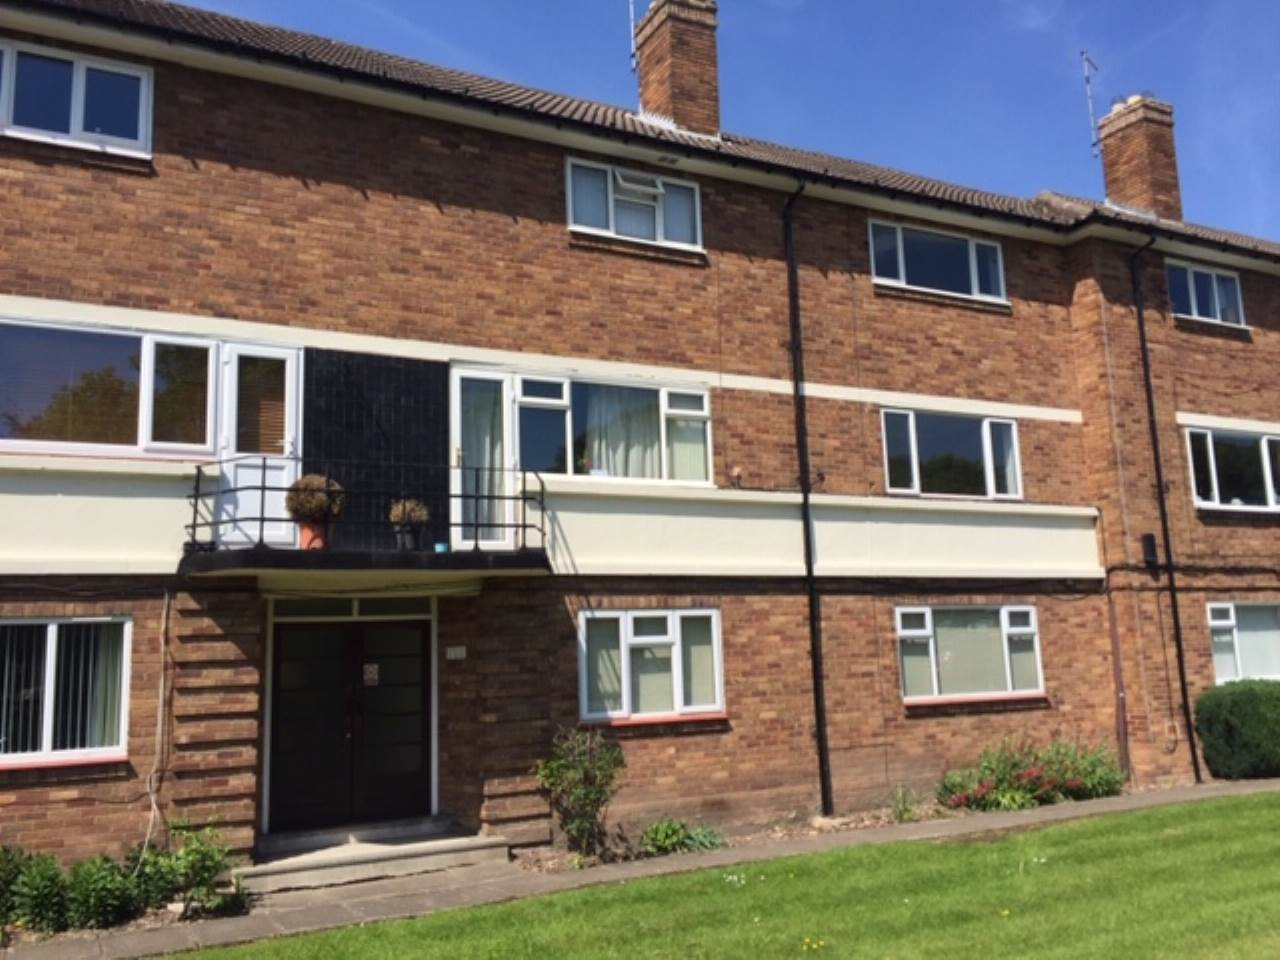 2 bed flat to rent in Walmley, Sutton Coldfield 0